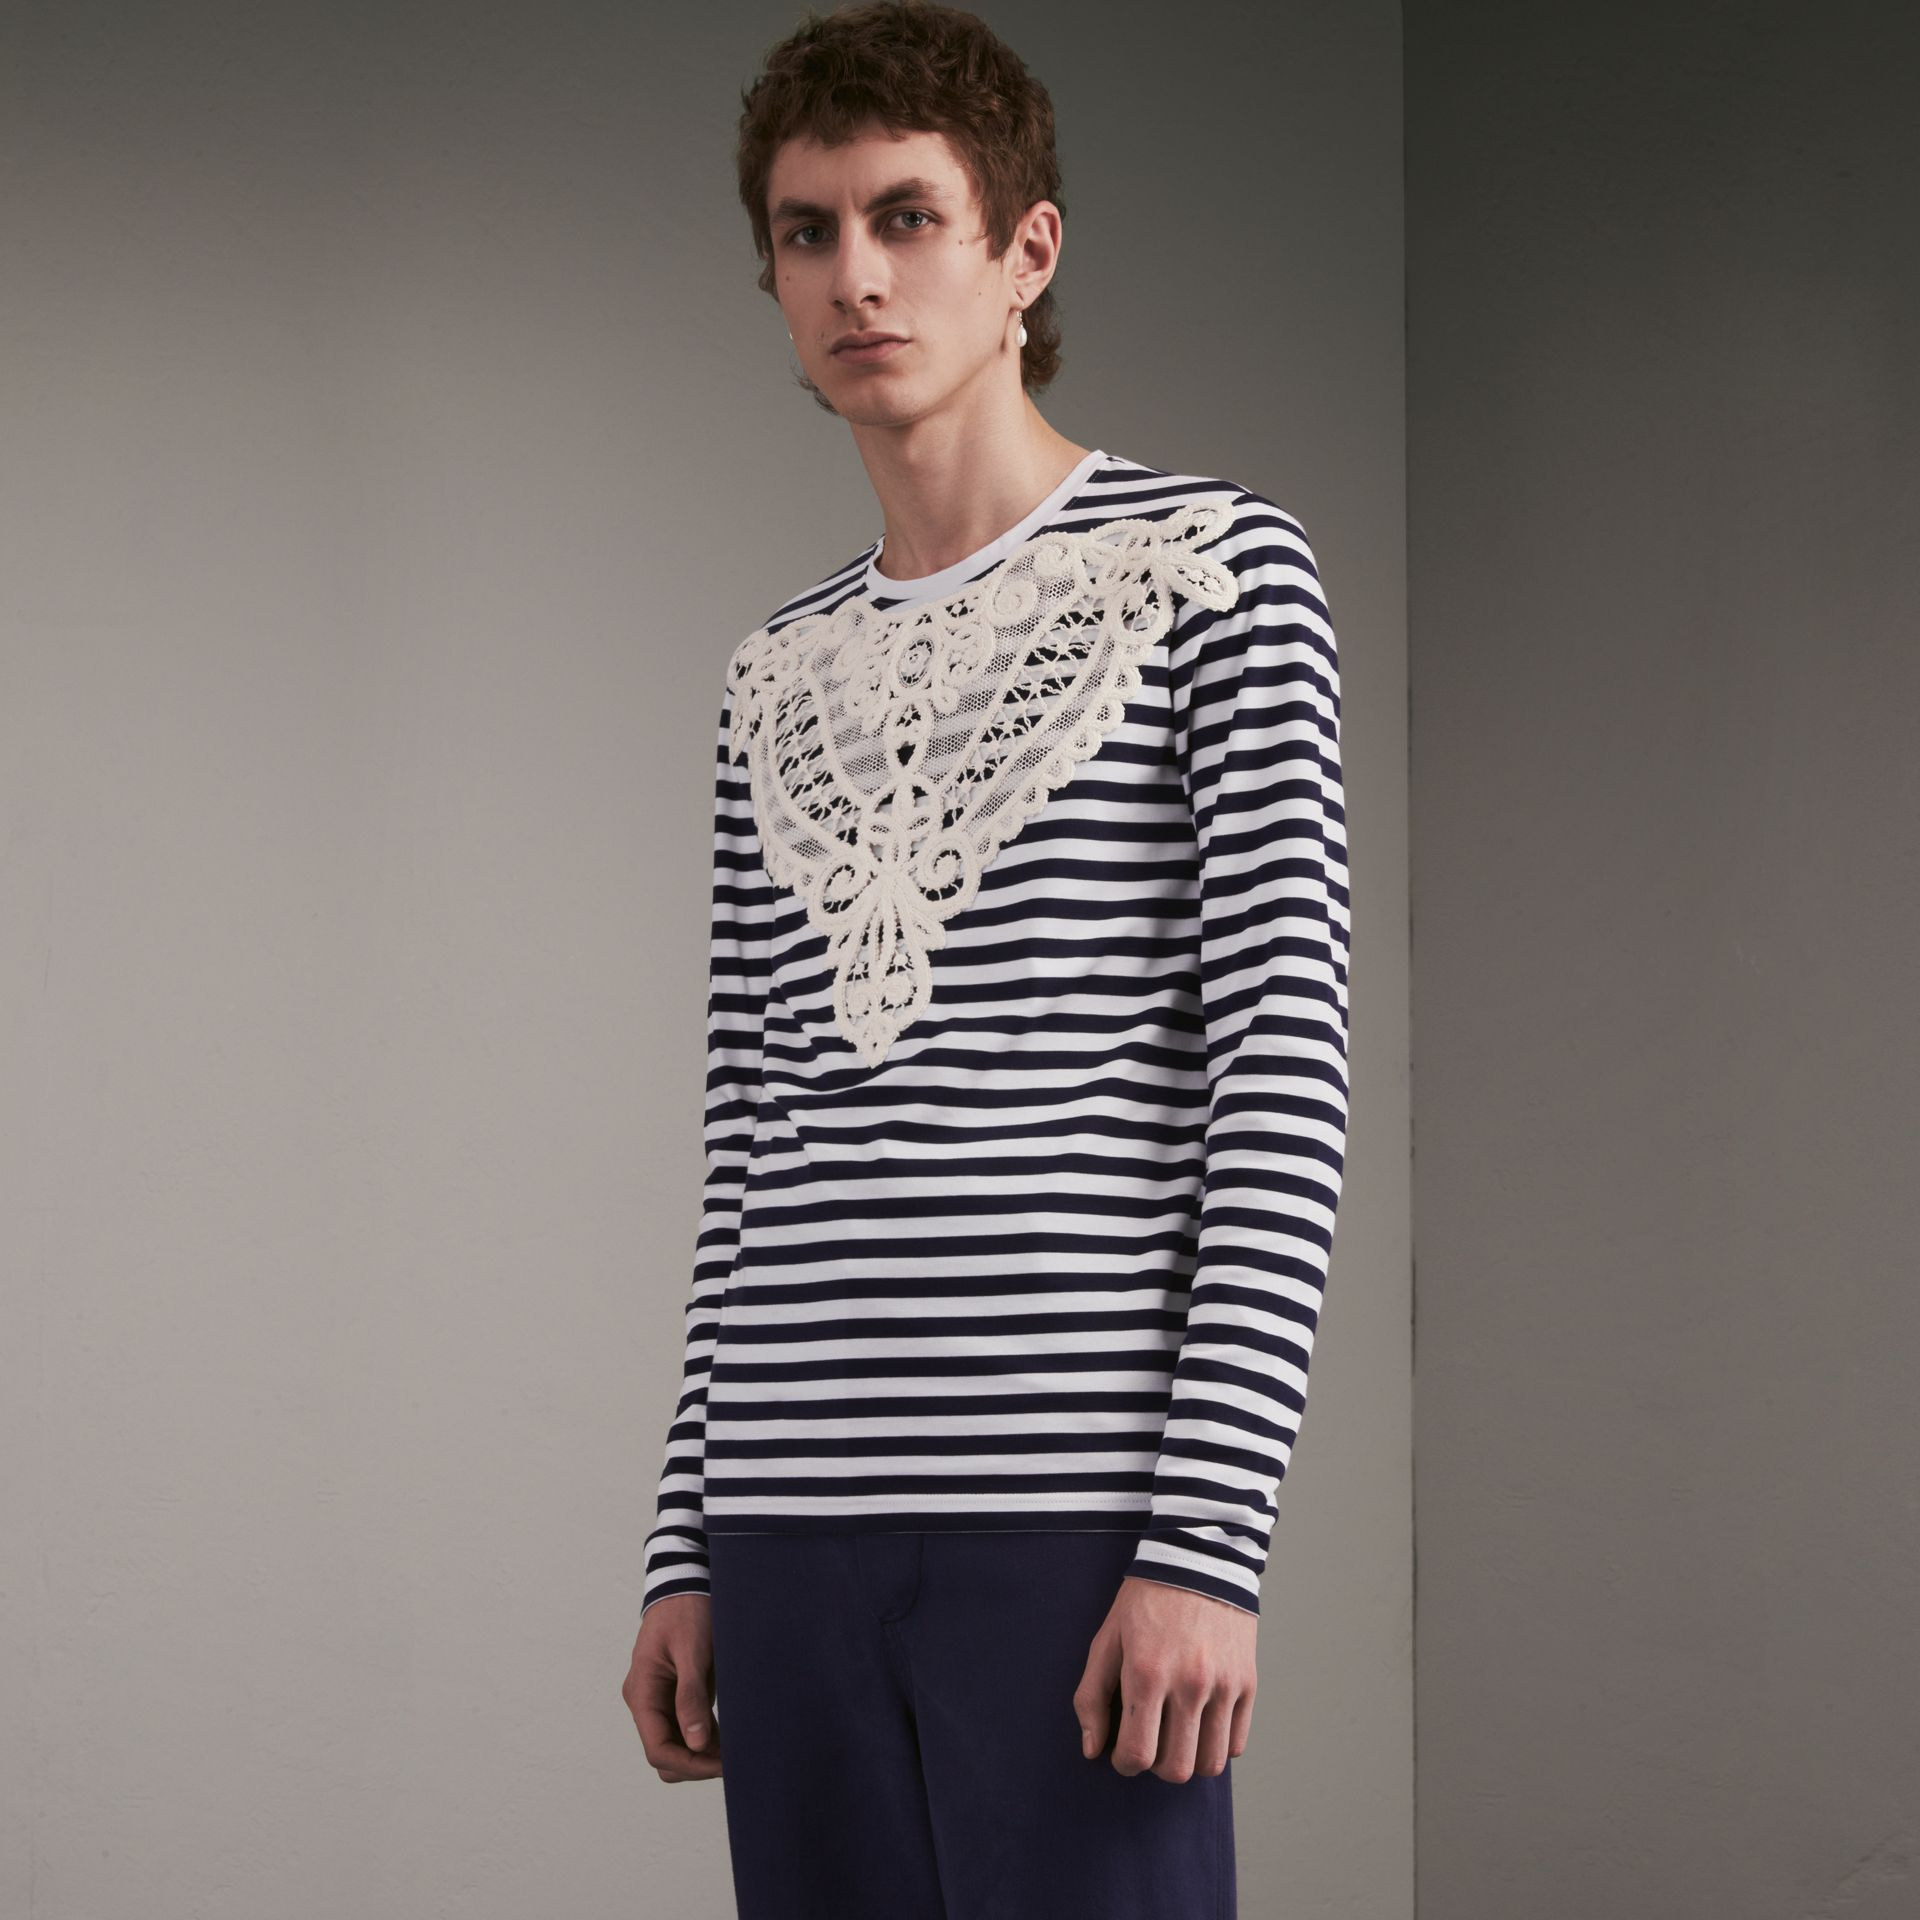 Unisex Breton Stripe Cotton Top with Lace Appliqué in Indigo - Men | Burberry - gallery image 1